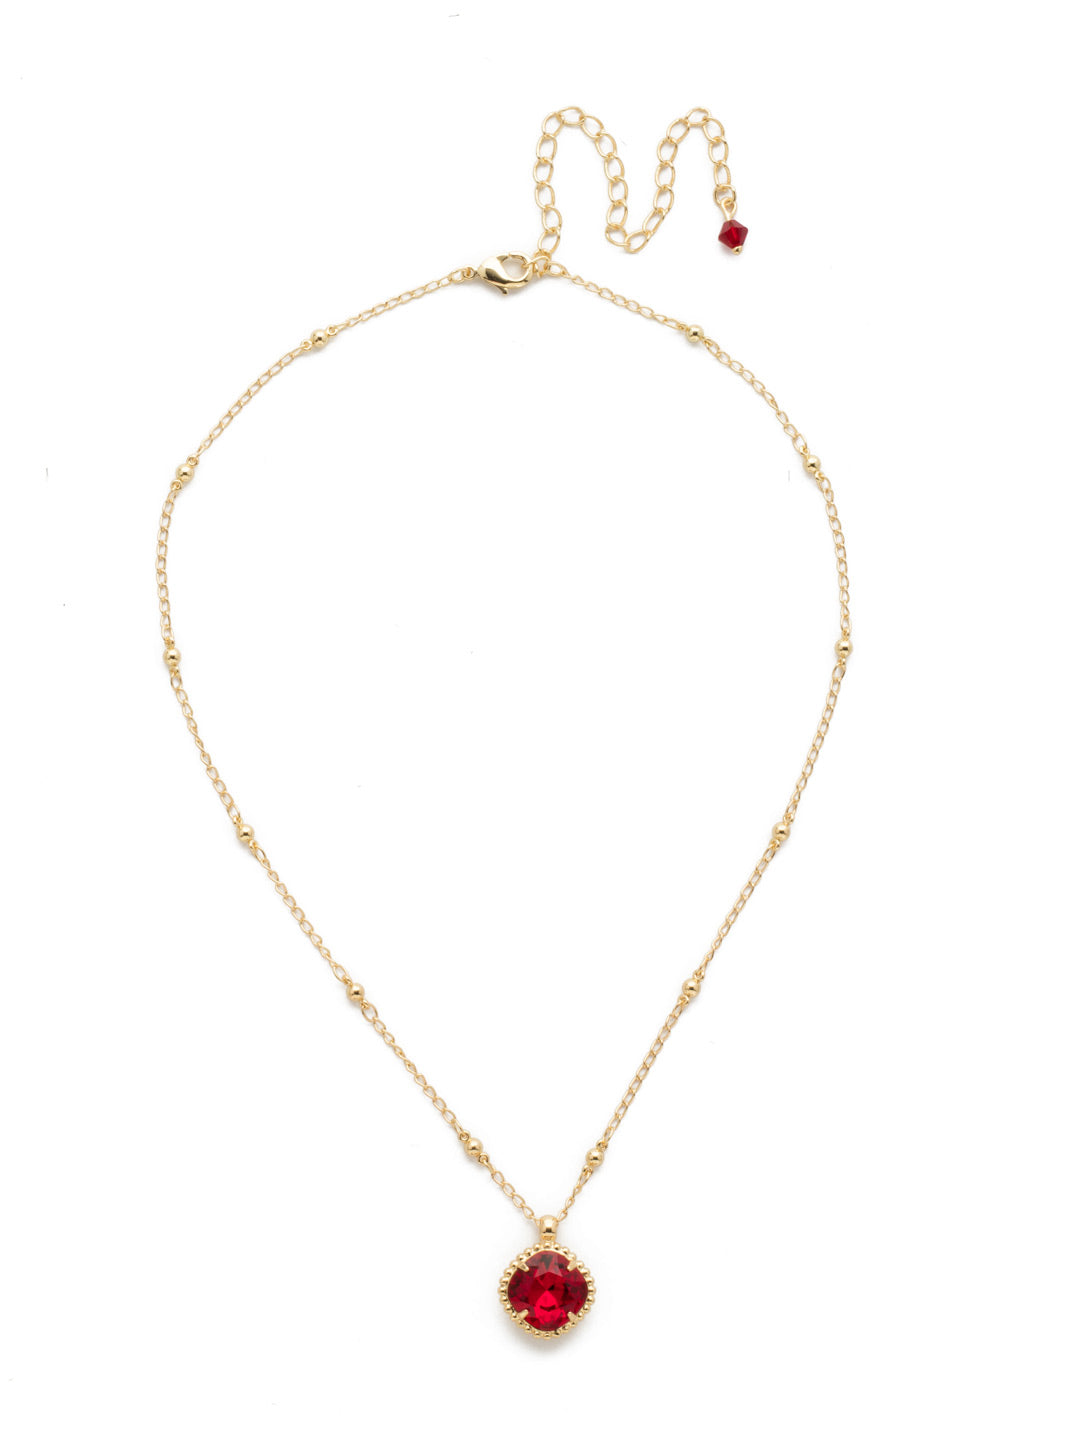 Cushion-Cut Solitaire Necklace - Sorrelli Essentials - NDS50BGSI